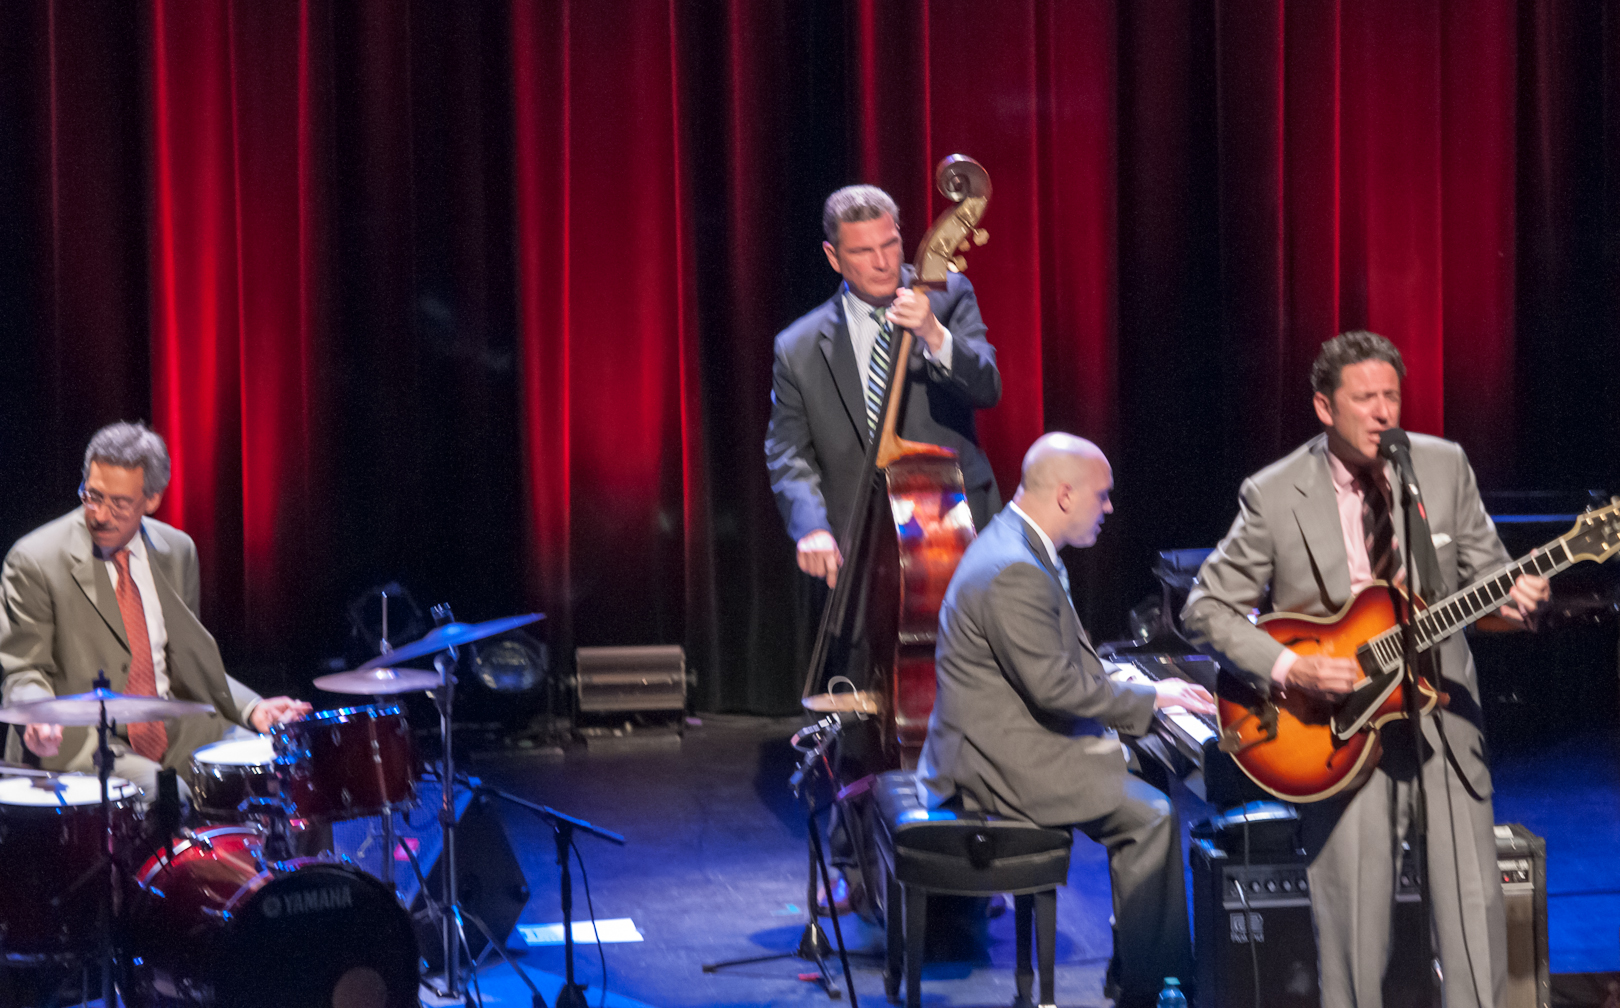 Tony Tedesco, Larry Fuller, Martin Pizzarelli and John Pizzarelli at the Montreal International Jazz Festival 2012